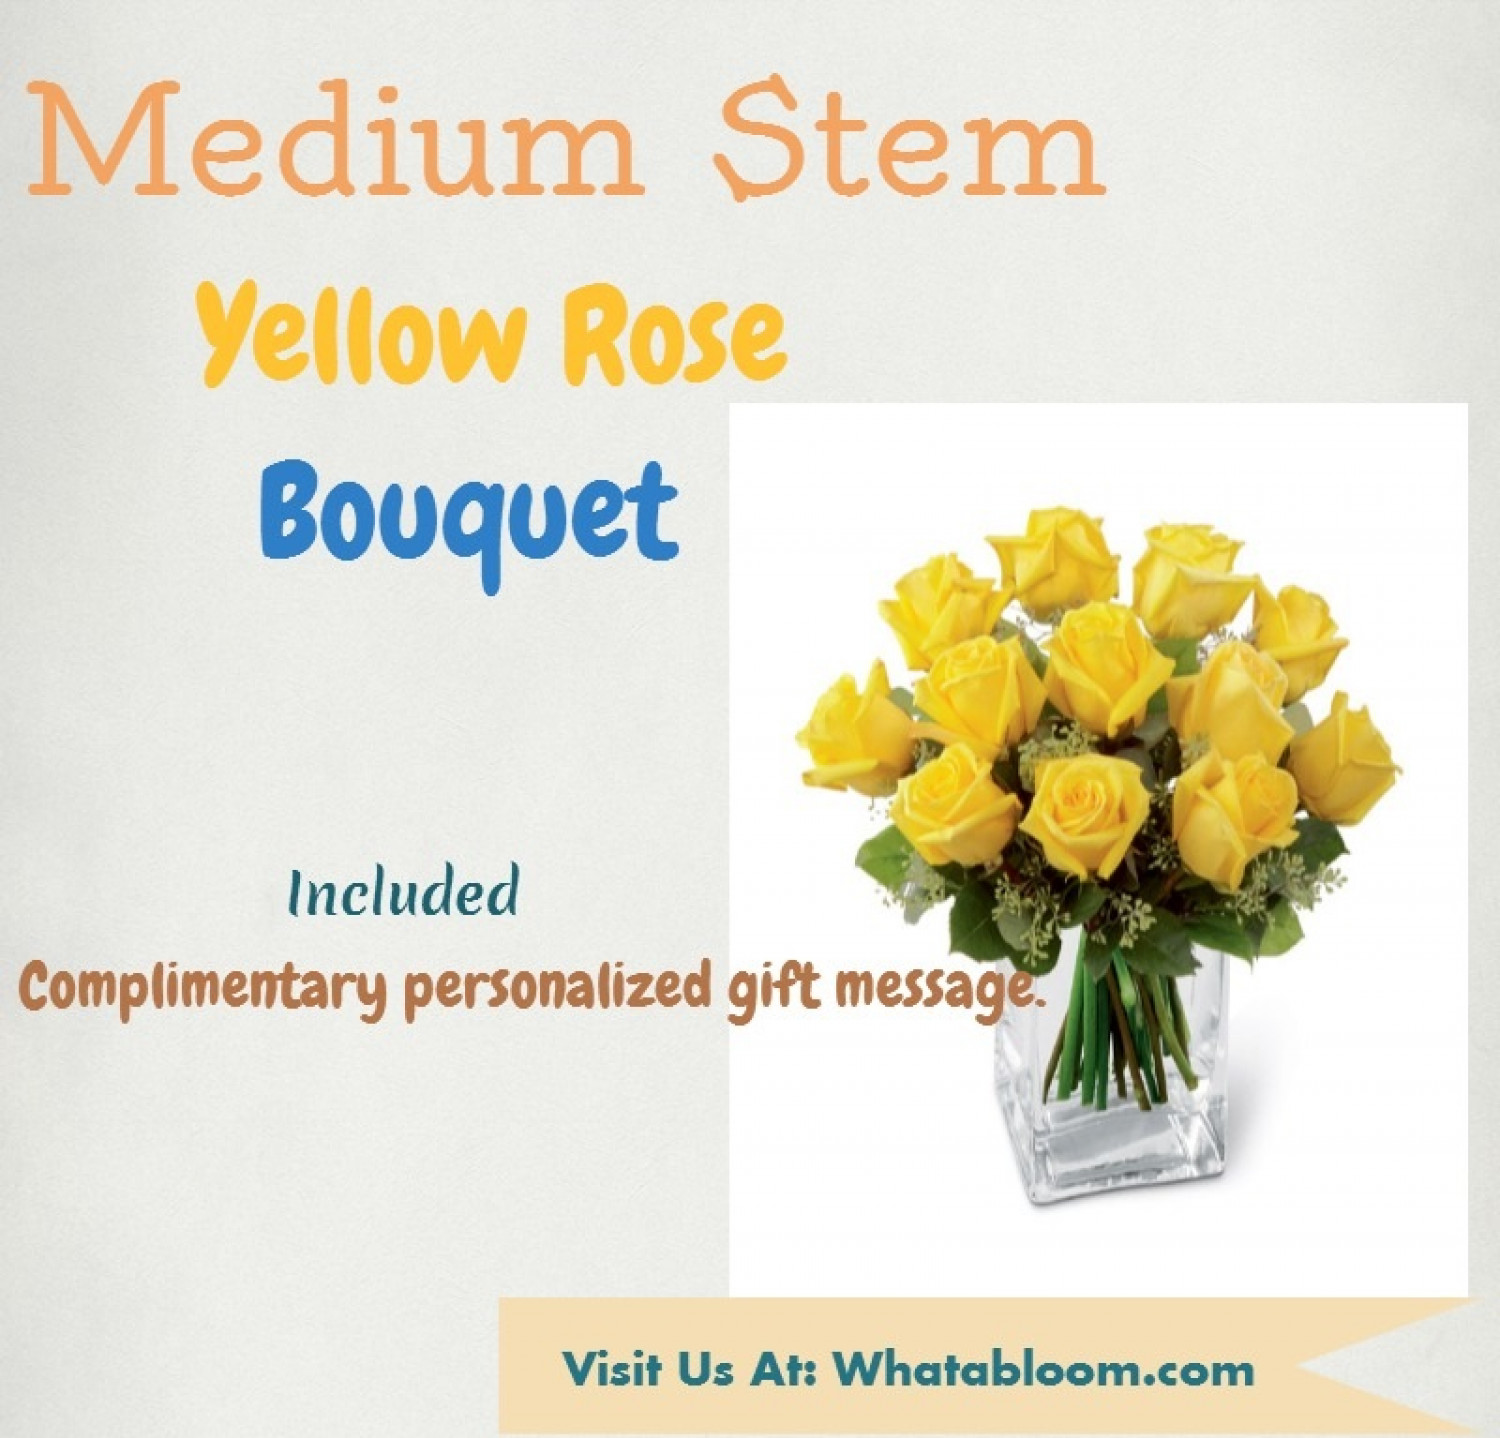 Summer flowers - Medium stem yellow rose bouquet Infographic